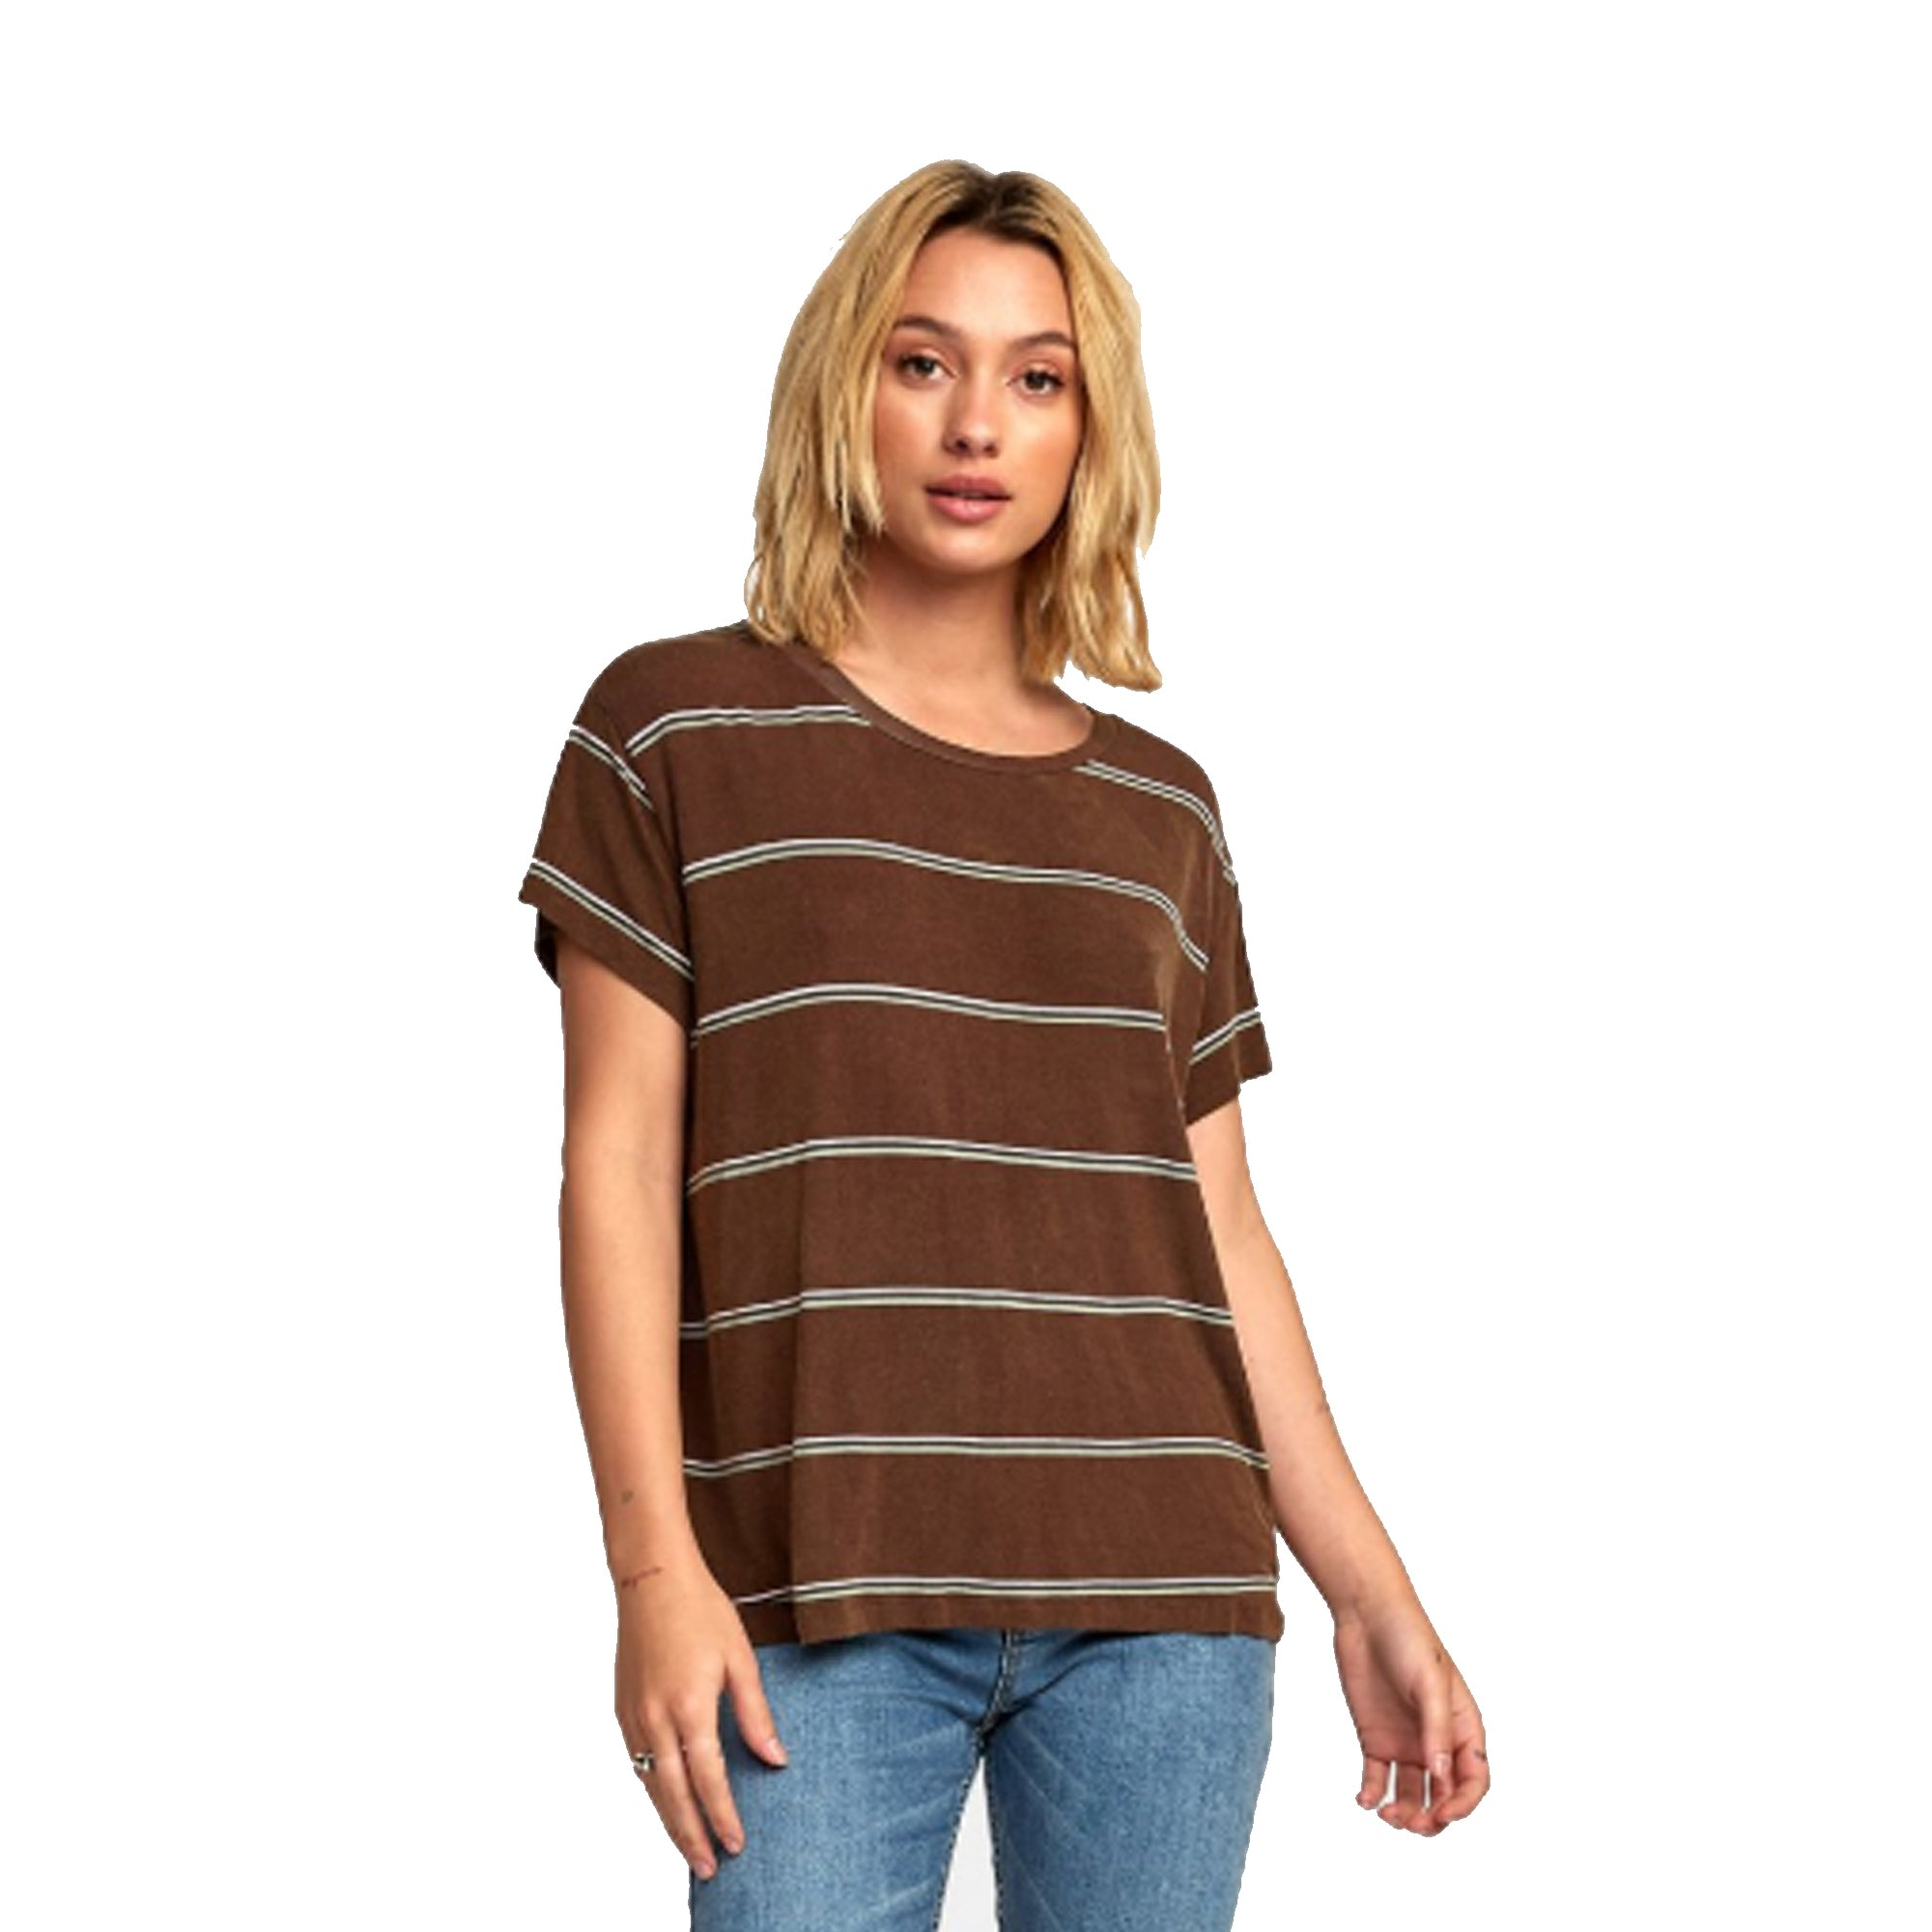 RVCA Recess 2 Women's S/S T-Shirt